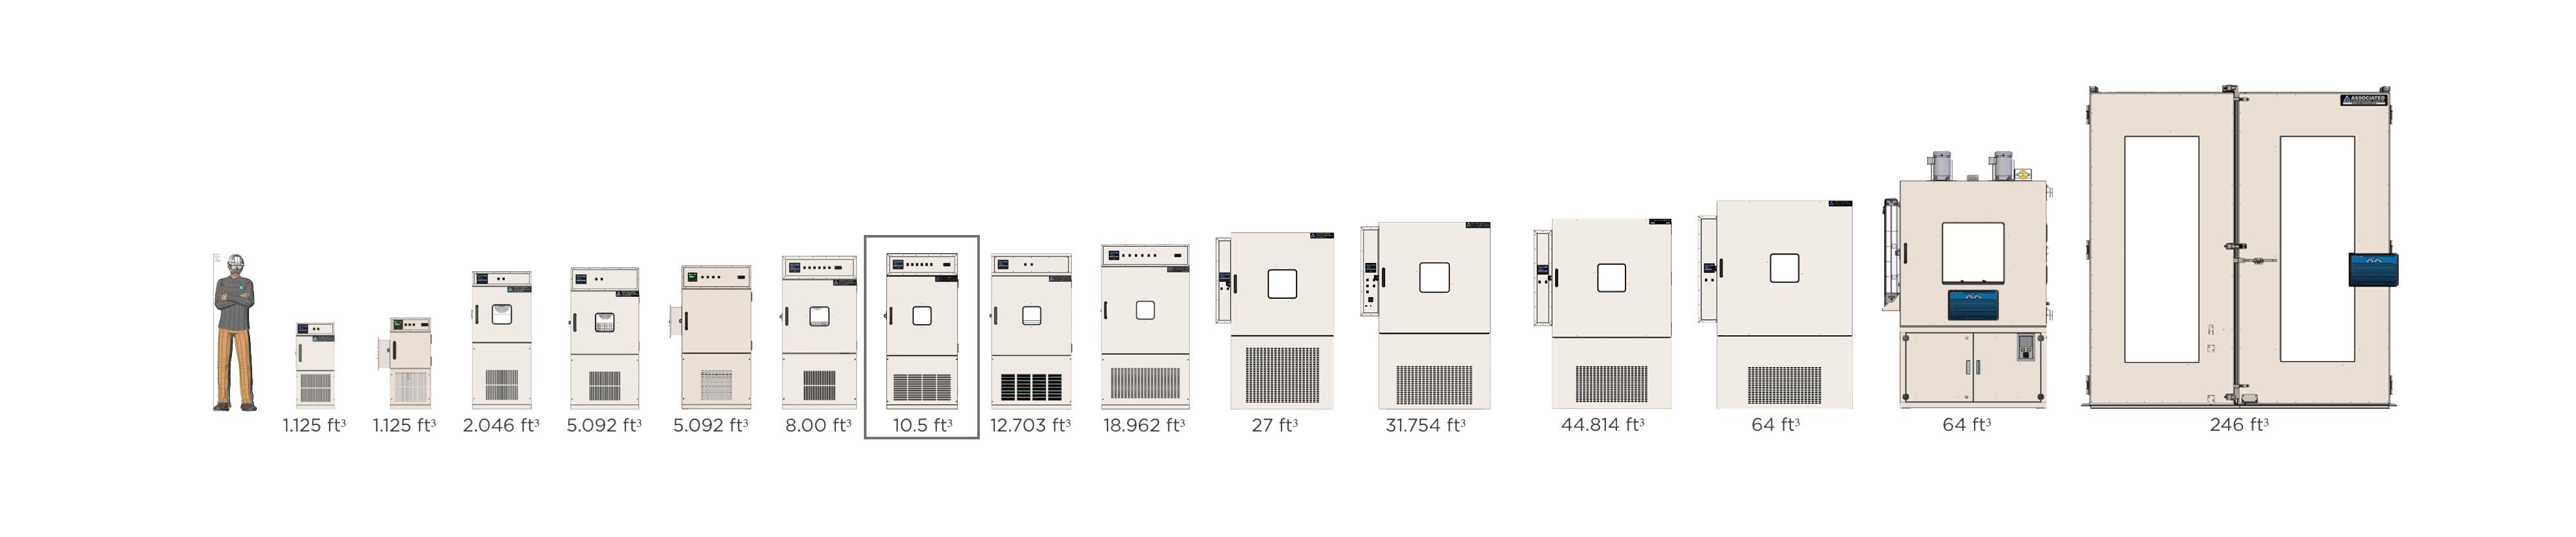 Scaled Image of FD-510